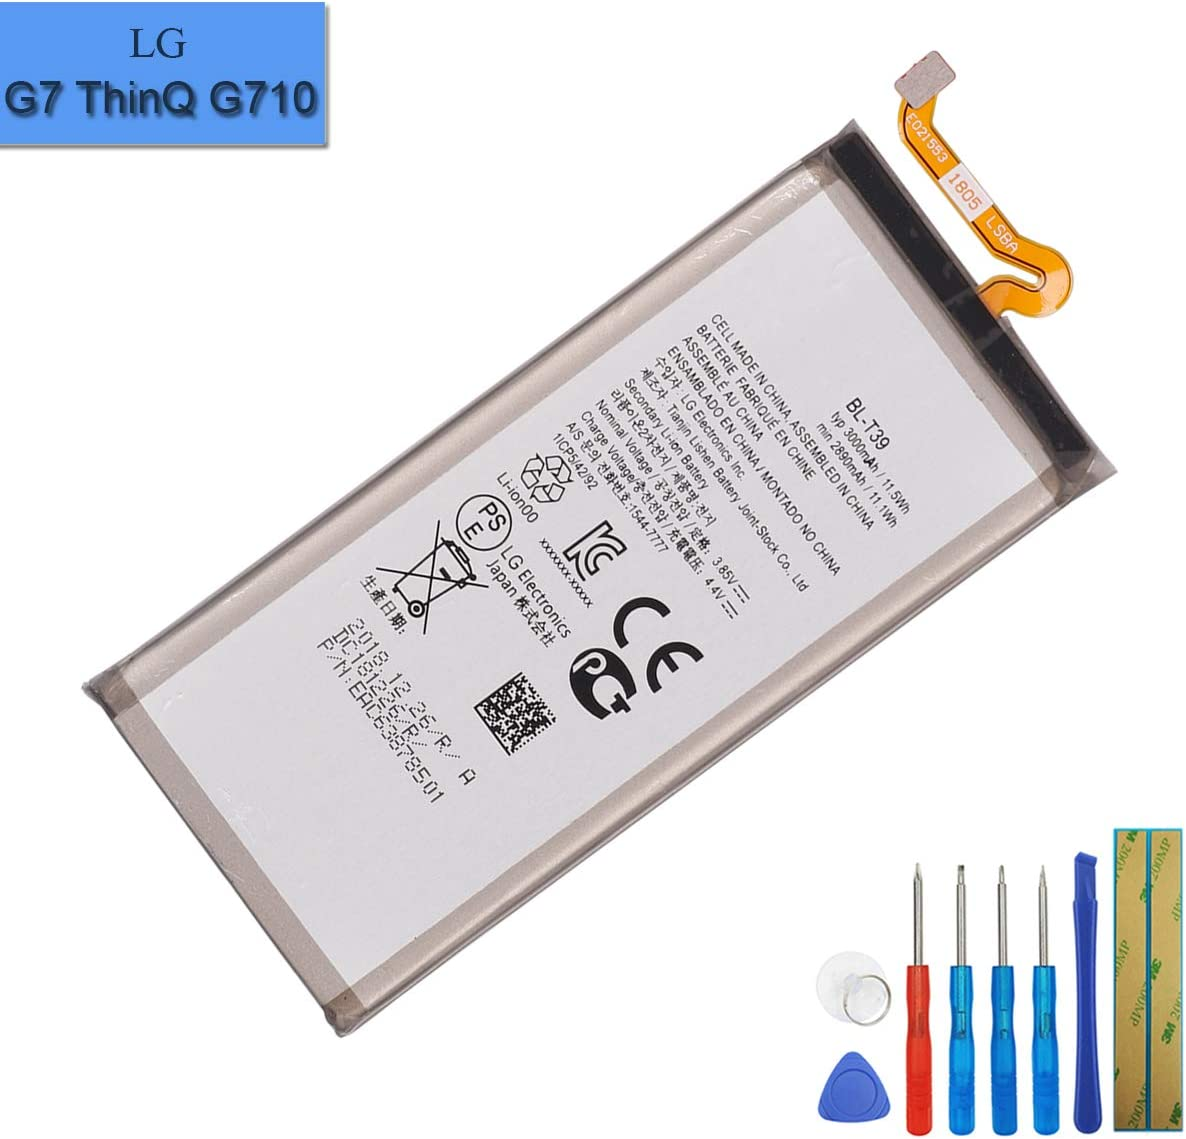 New Replacement Battery BL-T39 Compatible with LG G7 ThinQ G710 Q7 G7 Plus ThinQ G710EM G710N with Tools